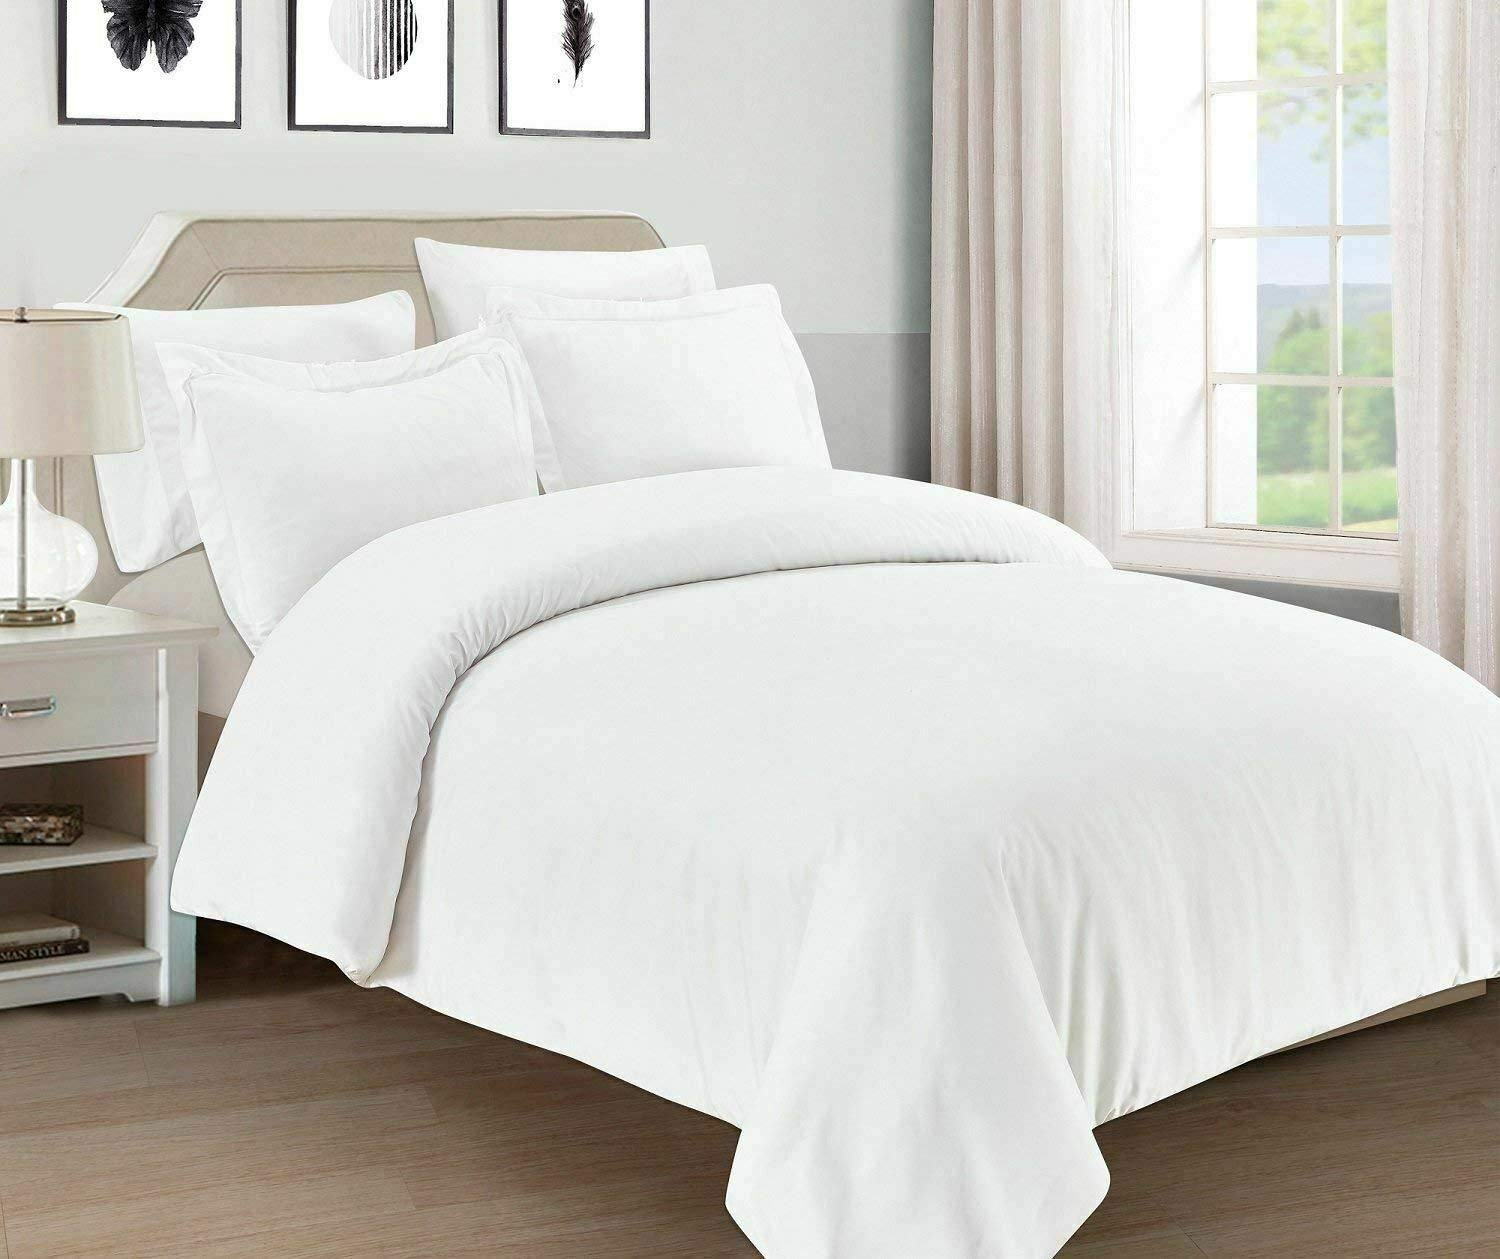 1800 Hotel Collection 5-Piece Duvet Cover Set - Hypoallergenic Bedding White/King/Cal King by Unknown